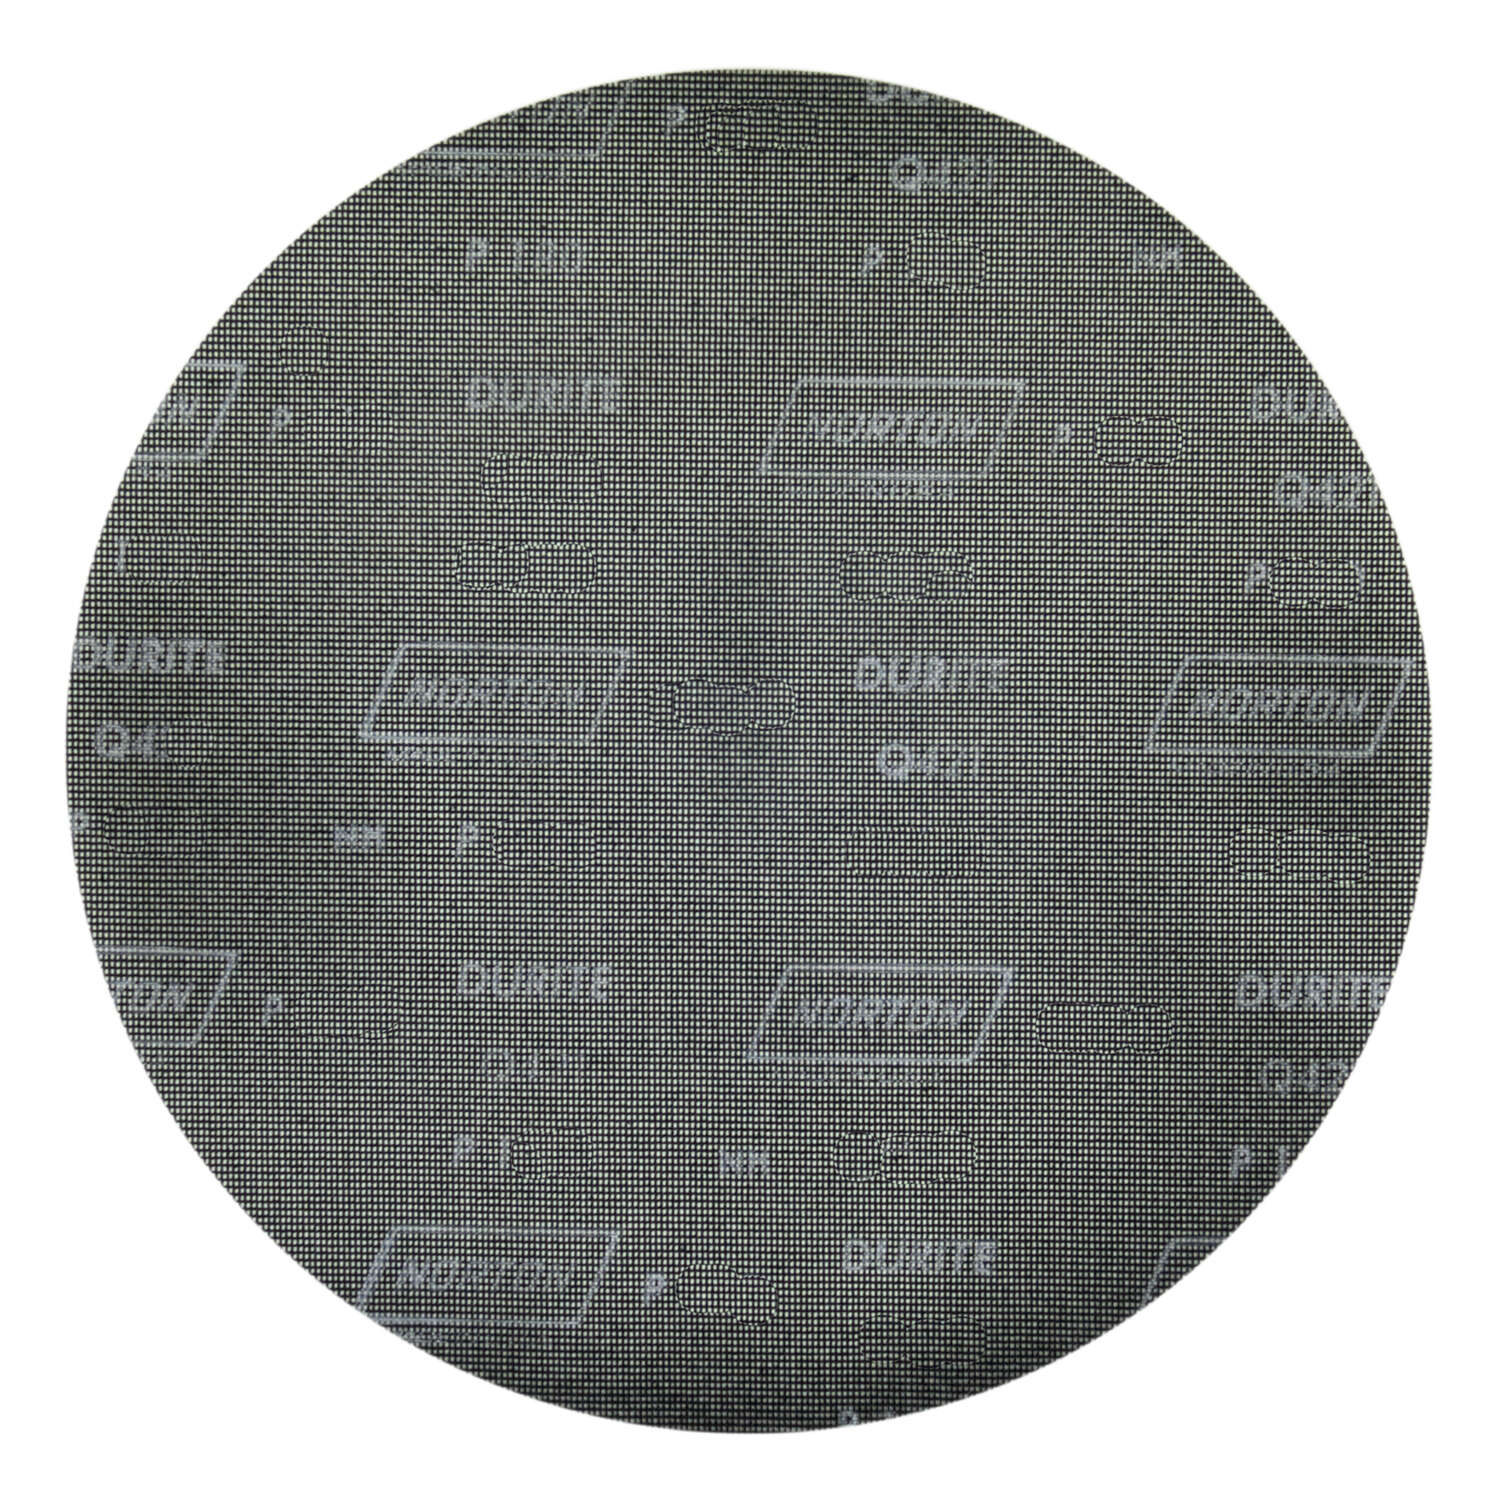 Norton Screen-Bak Durite 16 in. Silicon Carbide Center Mount Q421 Floor Sanding Disc 100 Grit